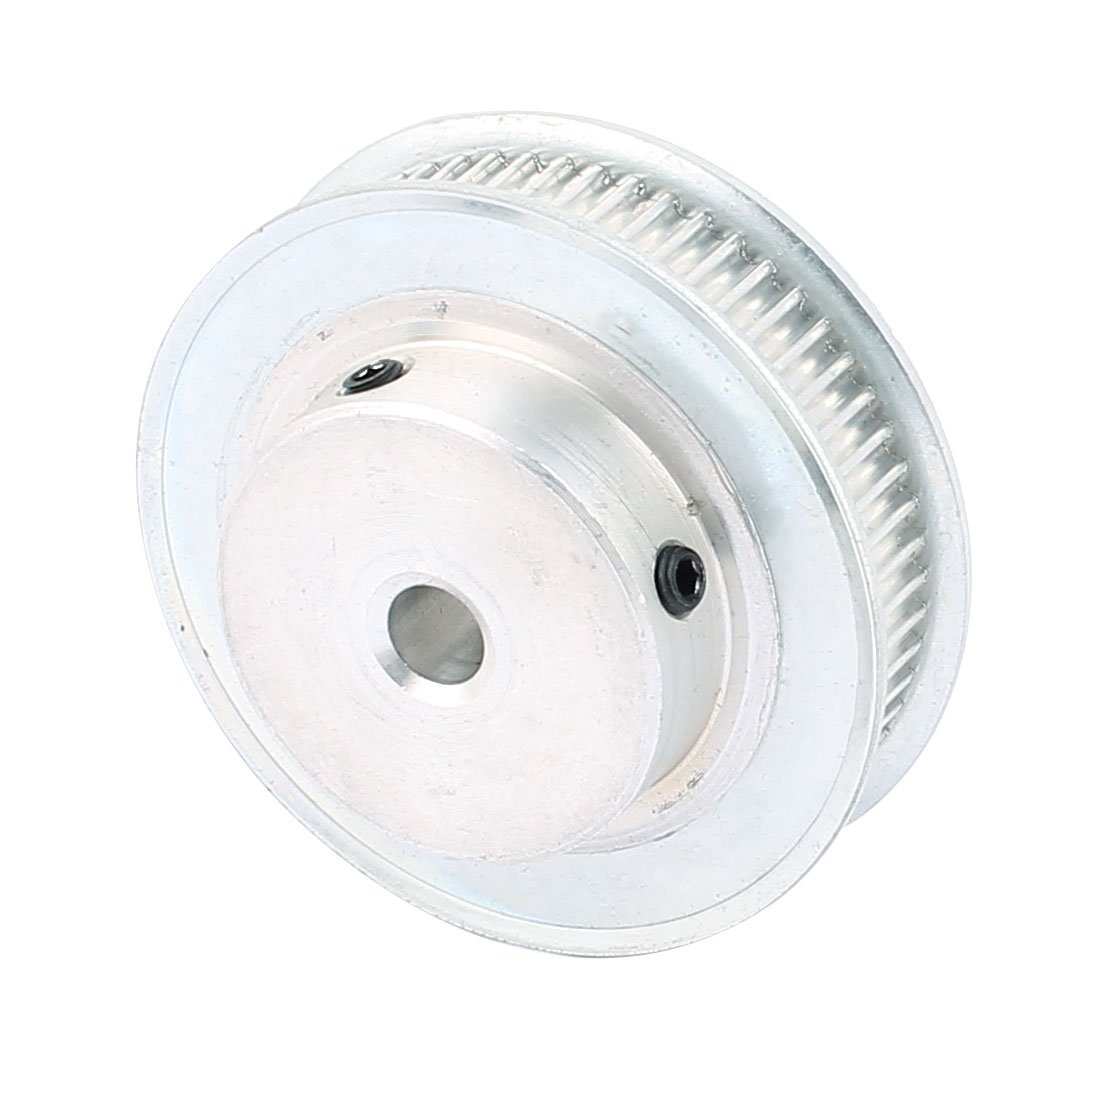 uxcell 3M60T 60 Teeth 8mm Bore Dia 10mm Width Belt Motor Drive Timing Pulley